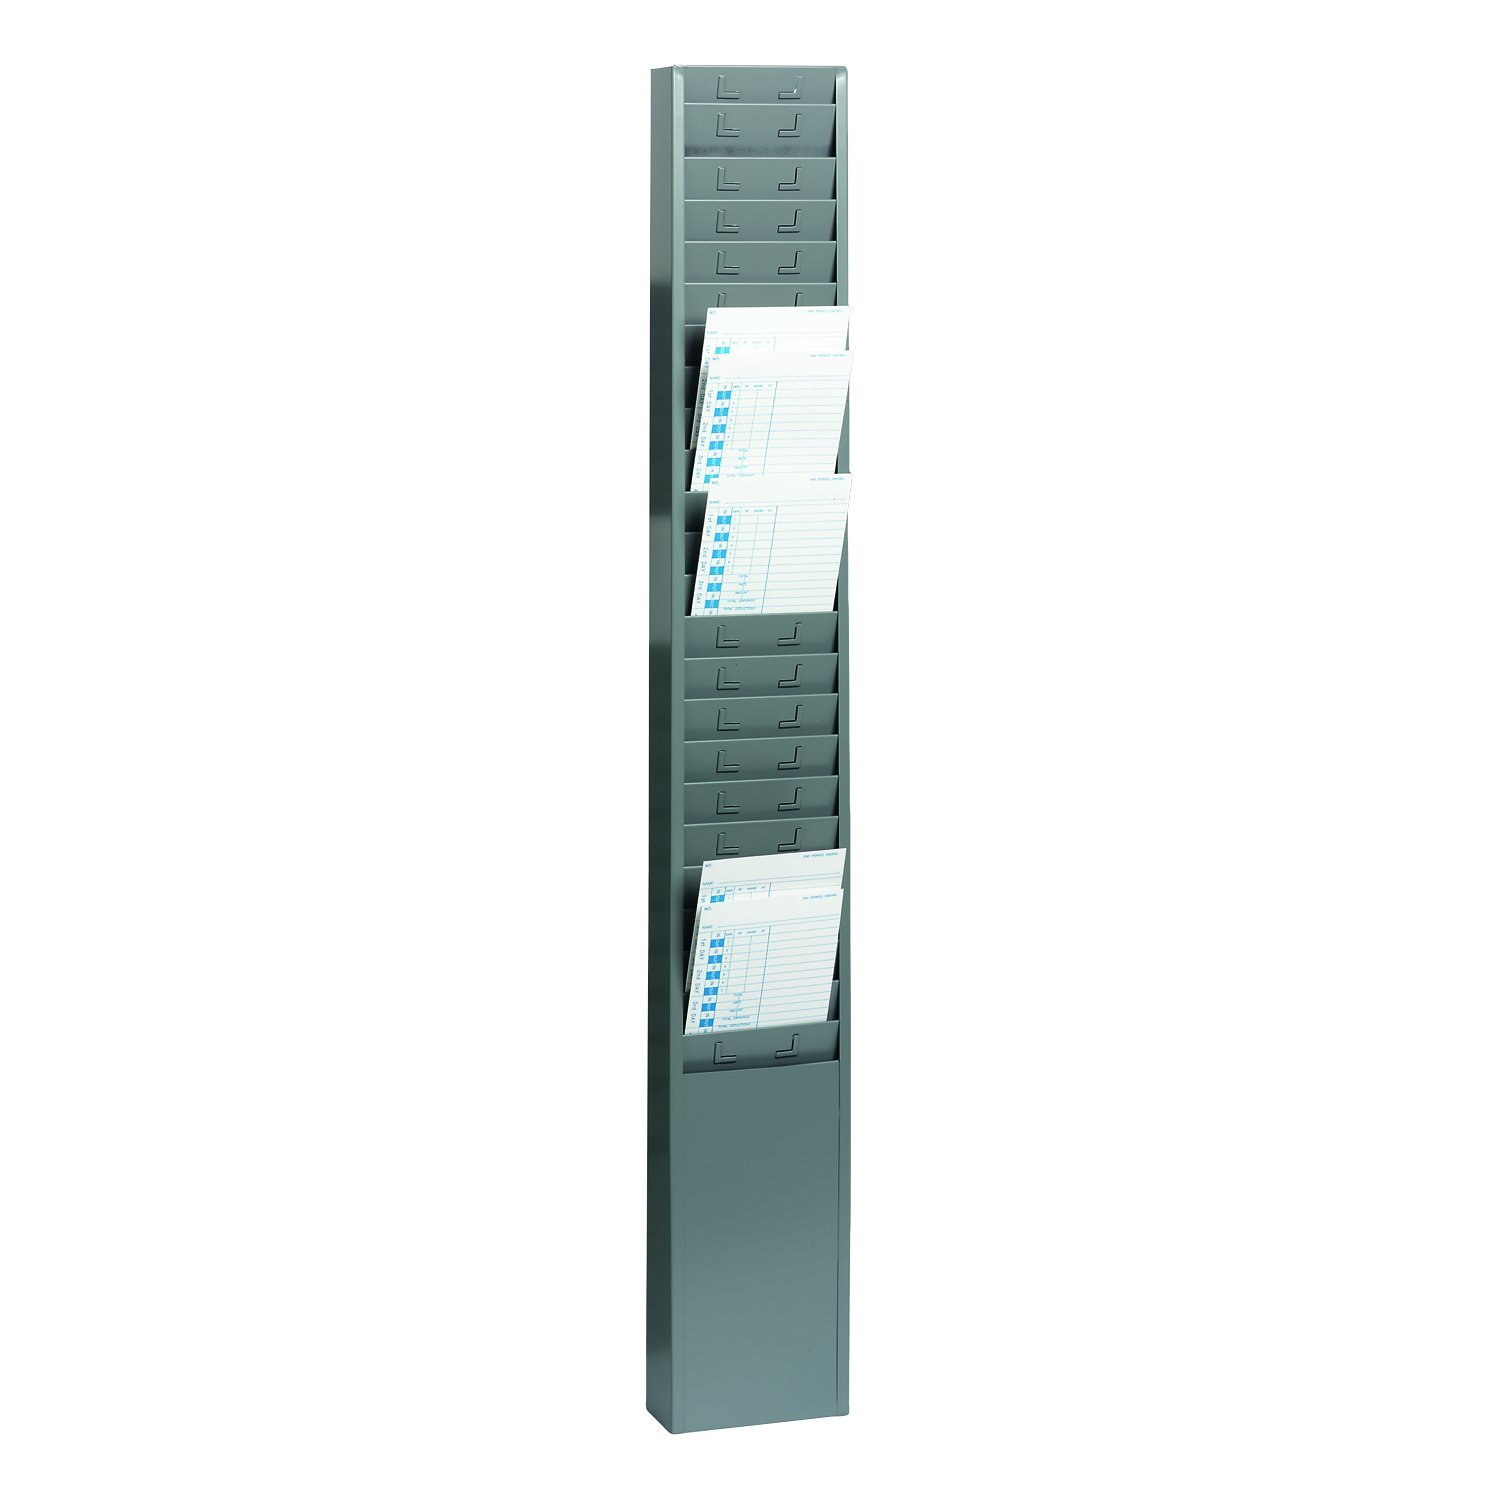 STEELMASTER 25-Pocket Steel Time Card Rack, 5.13 x 36 x 2 Inches, Gray (270R1TCRGY) by MMF Industries